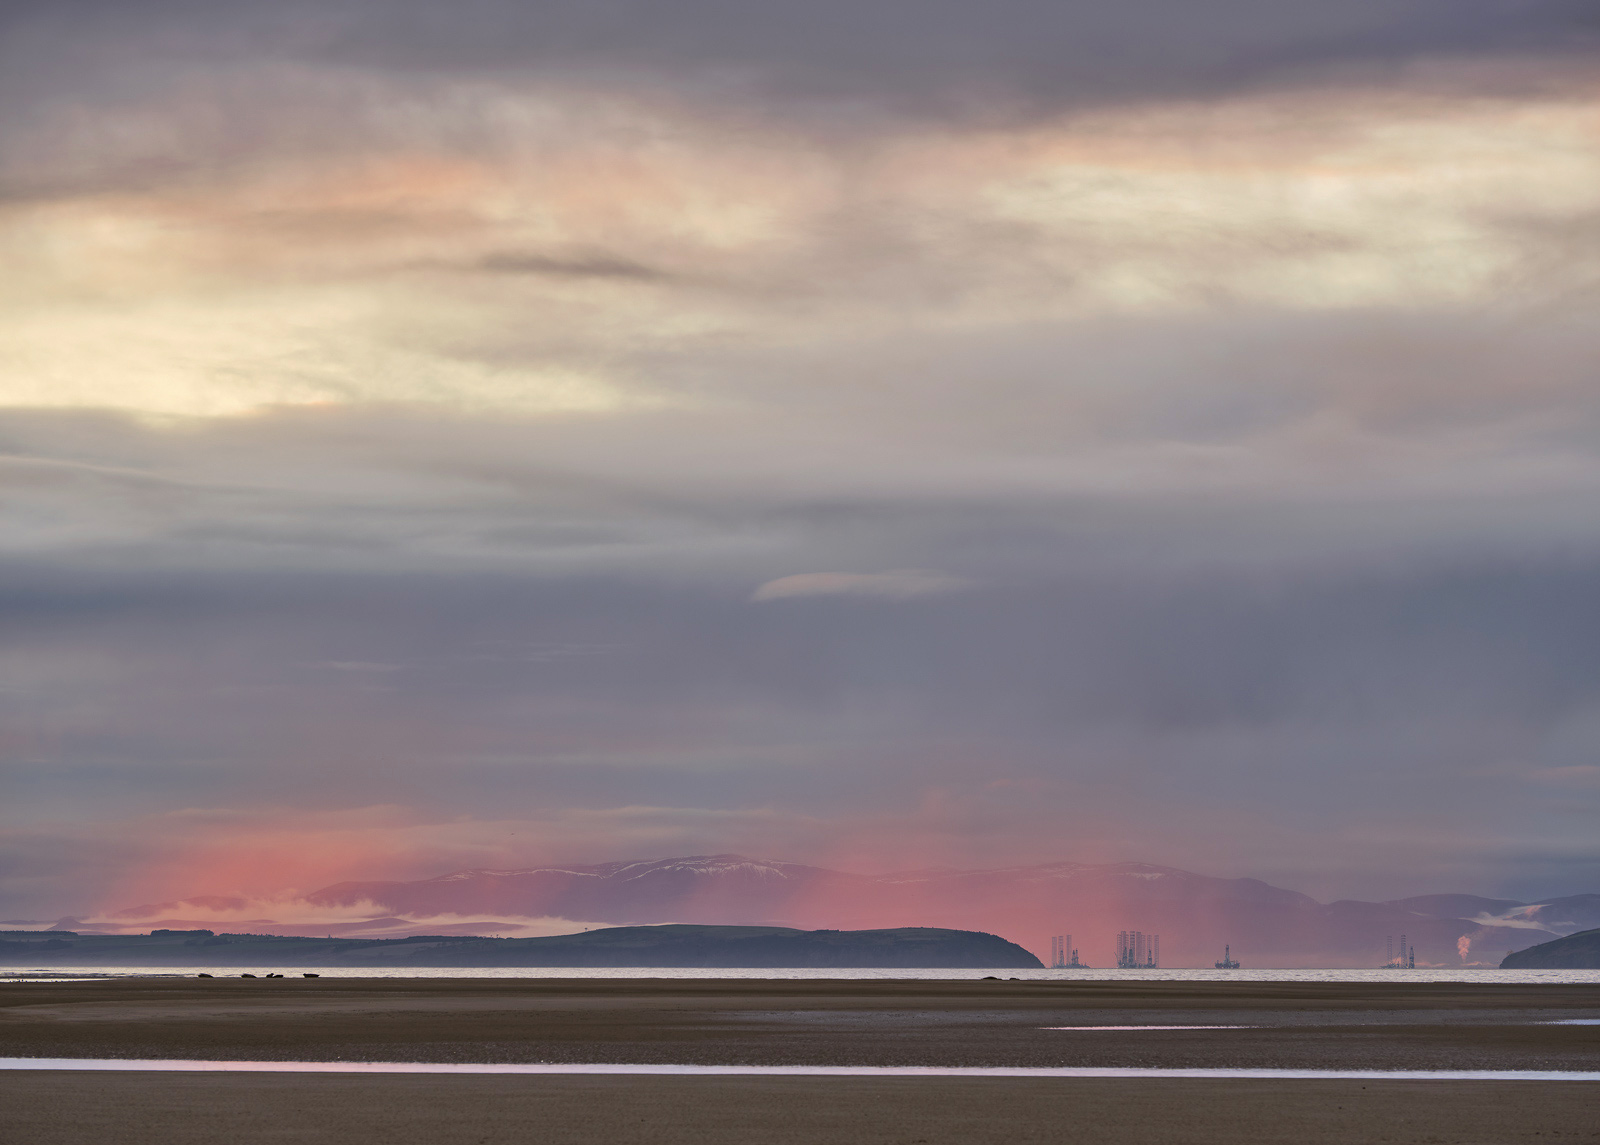 At low tide in Findhorn, the beach is uncovered to an epic extent and the seals that tour the Moray Firth haul themselves out...